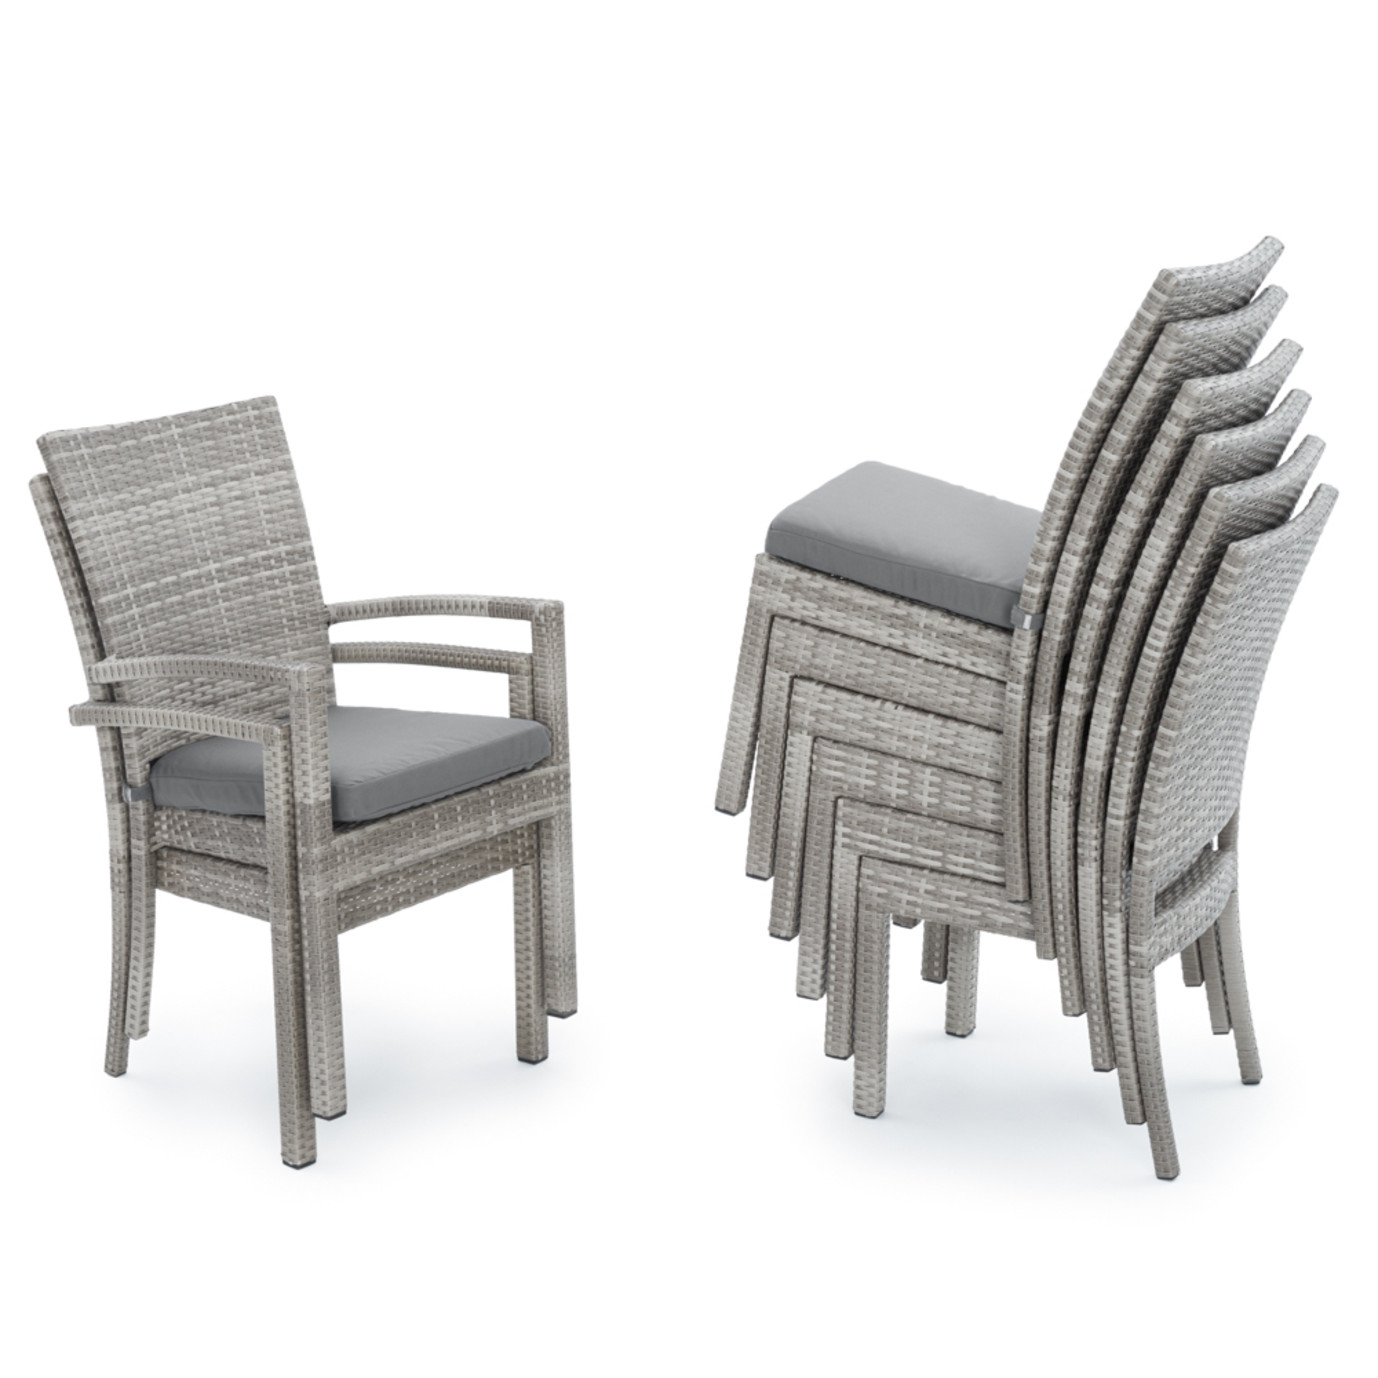 Cannes™ Woven Dining Set - Charcoal Grey